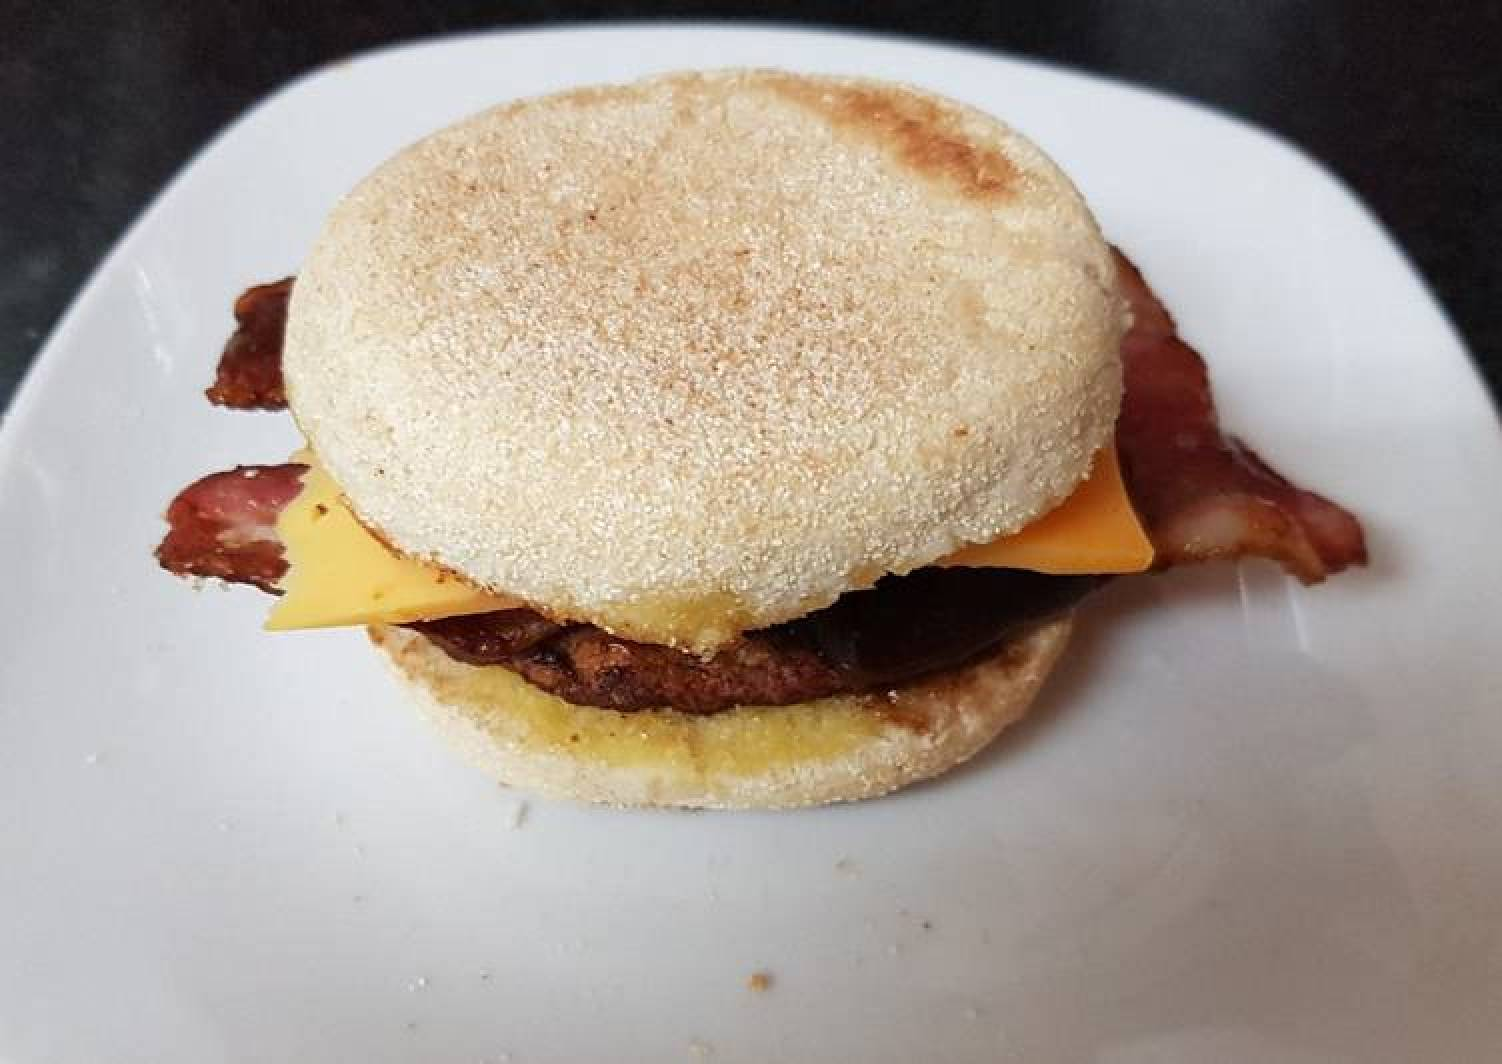 My Bacon and Blackpudding Muffin. ❤